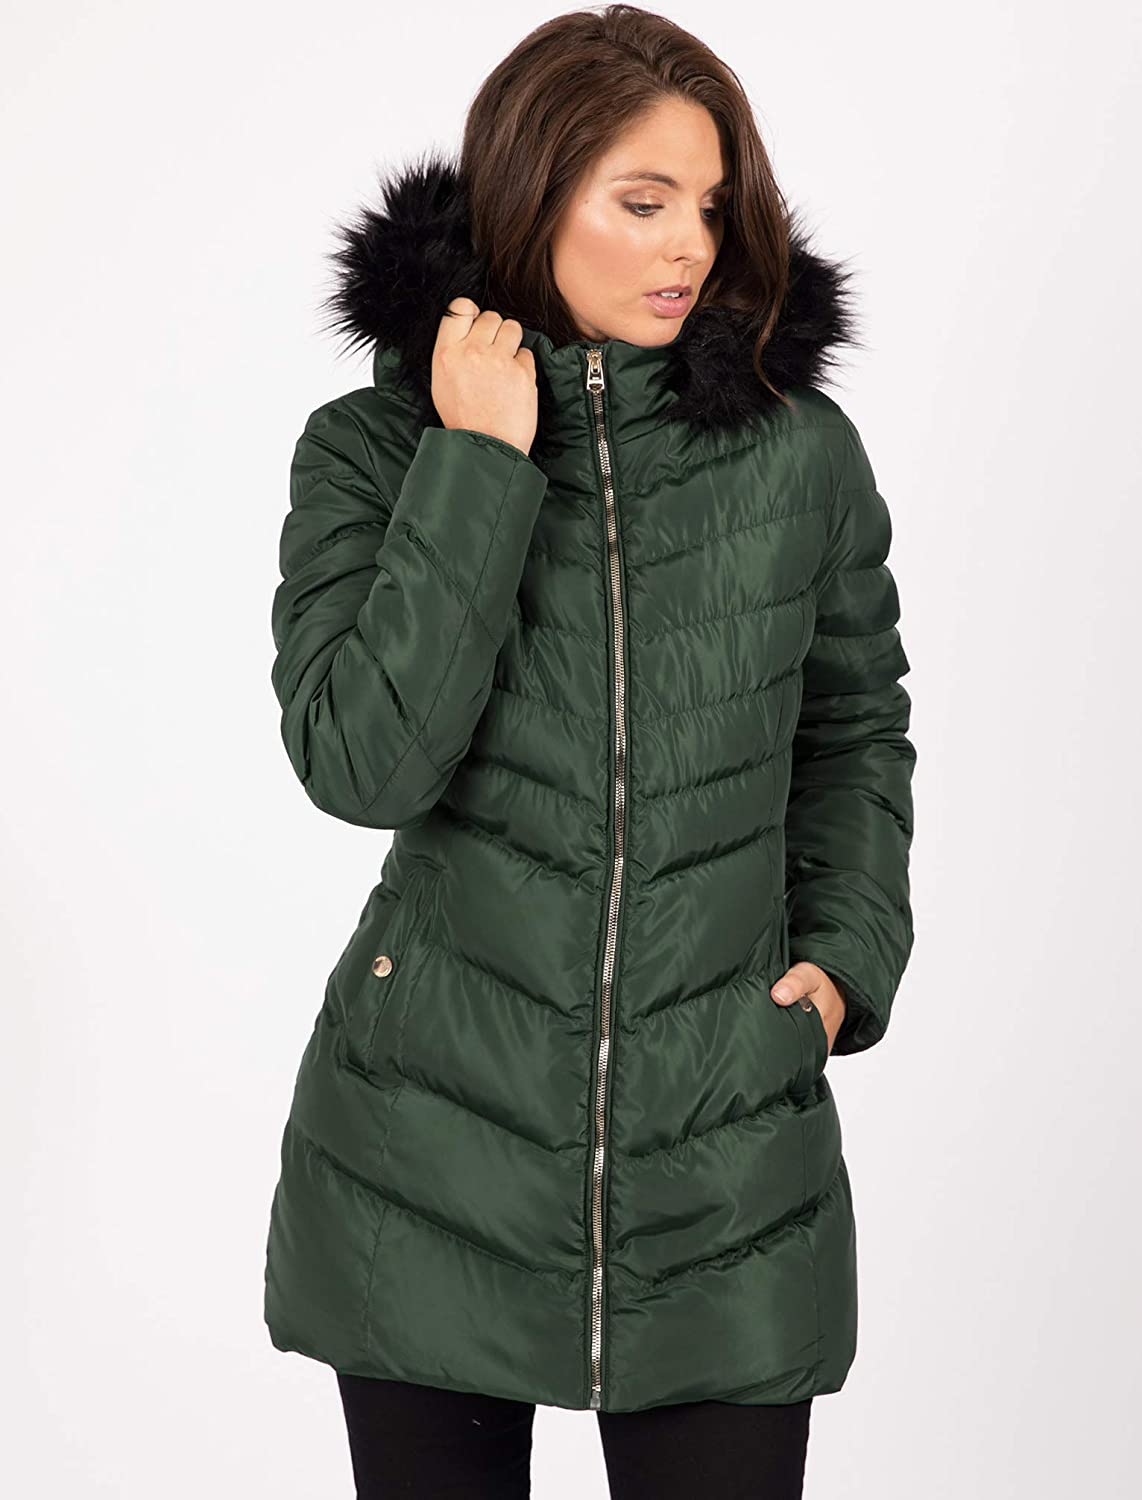 Tokyo Laundry Womens Lotus Longline Quilted Hooded Coat